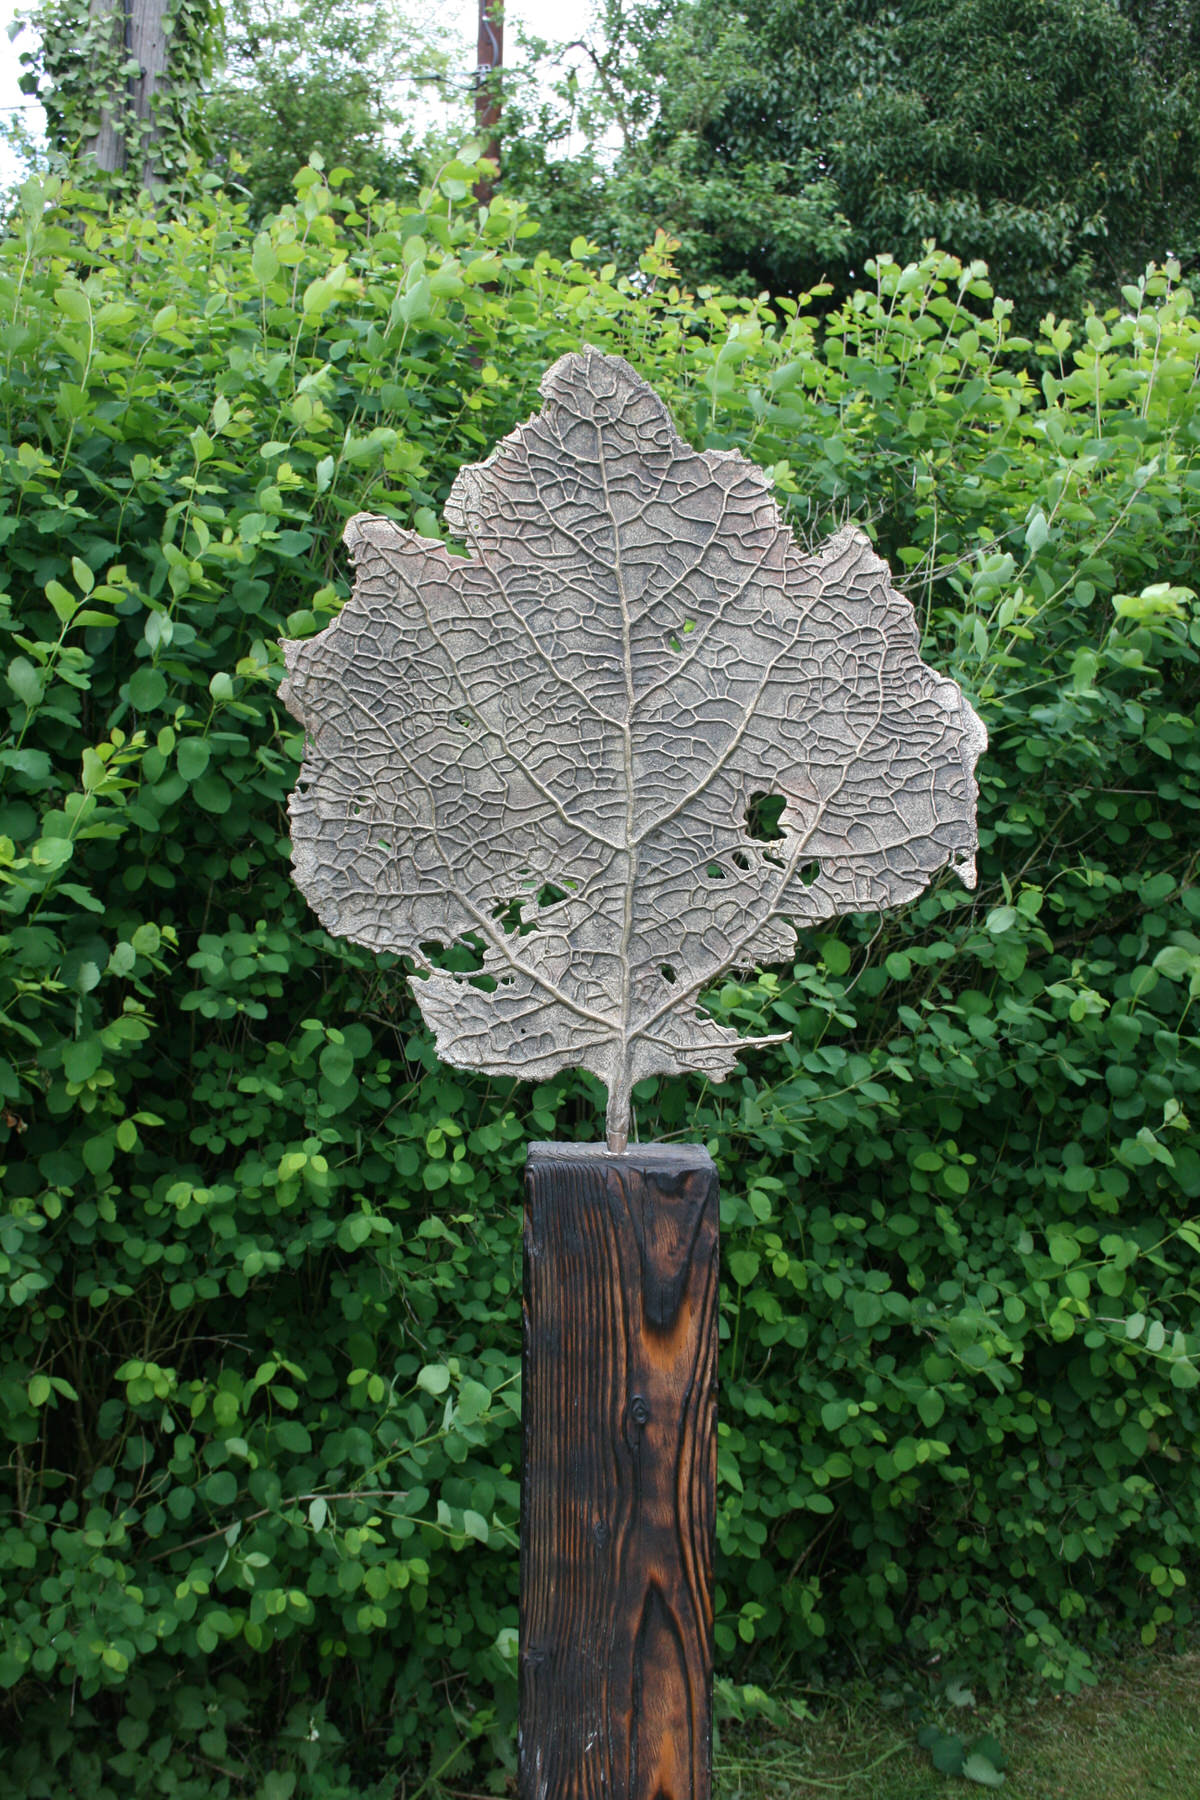 Skeleton Leaf Bronze sculpture by Mark Reed garden sculpture